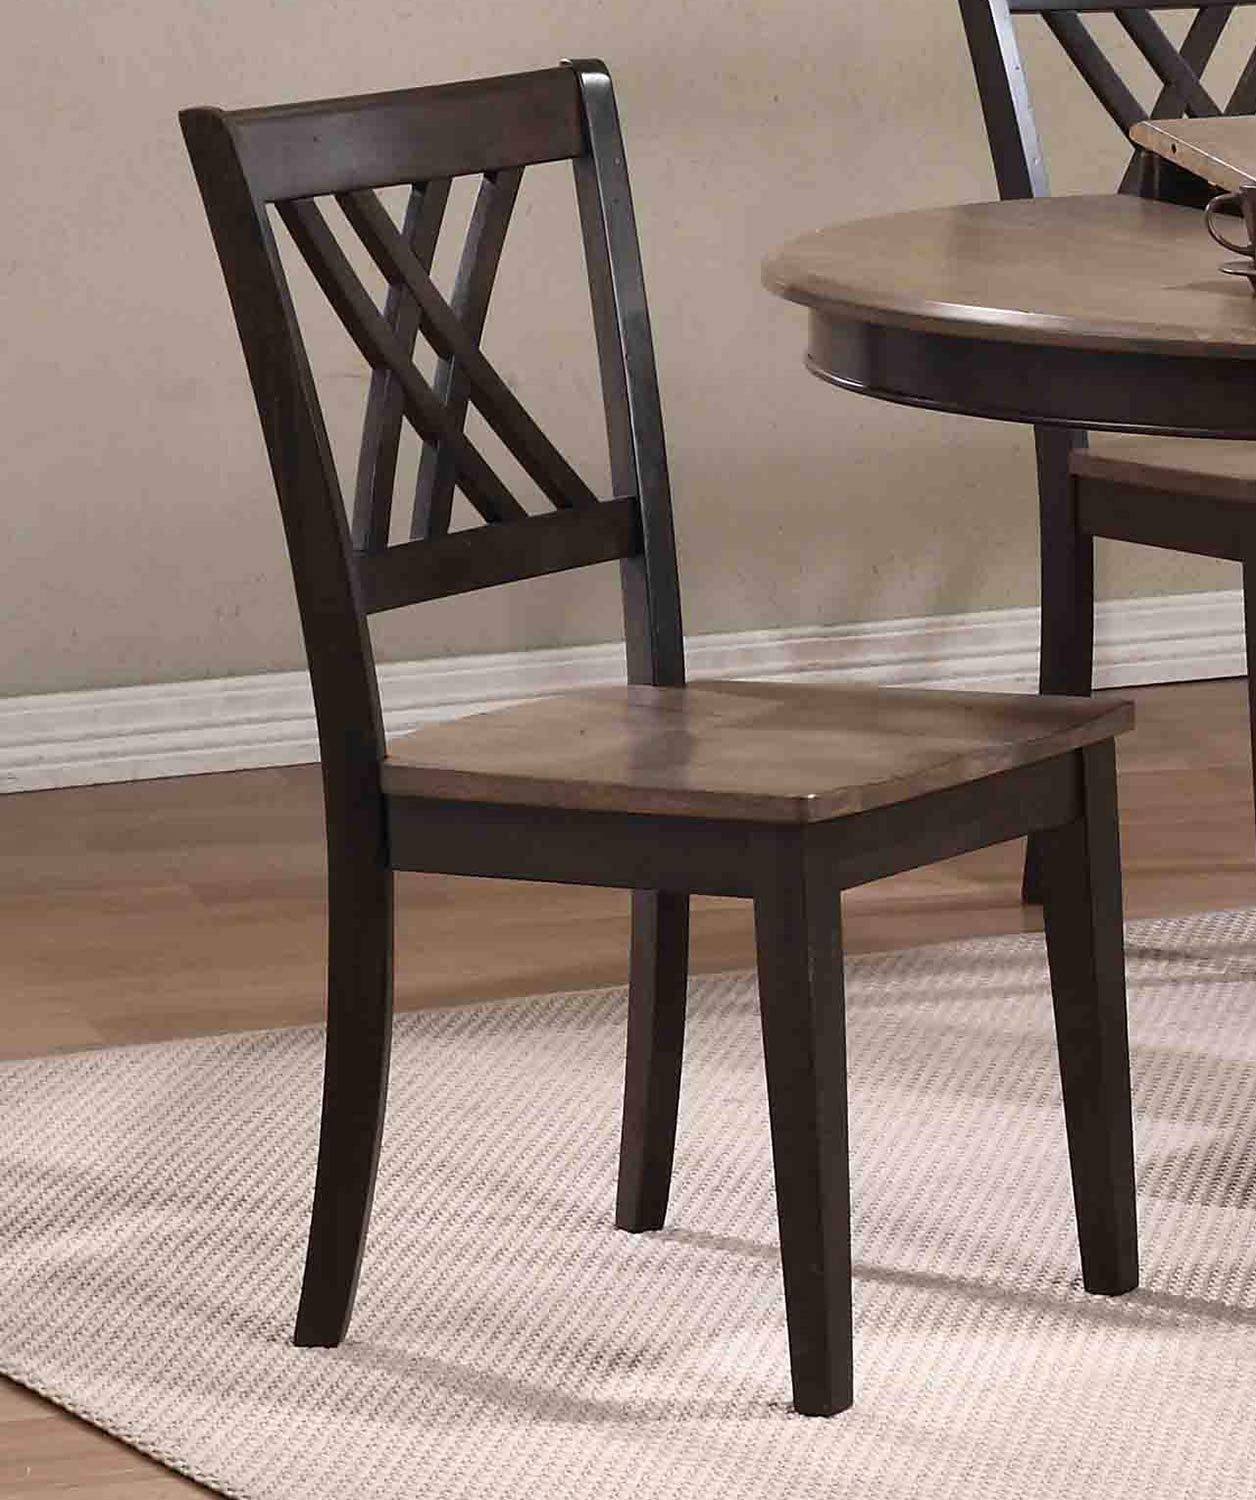 double x back chairs ohio state chair iconic furniture rectangular leg dining set with